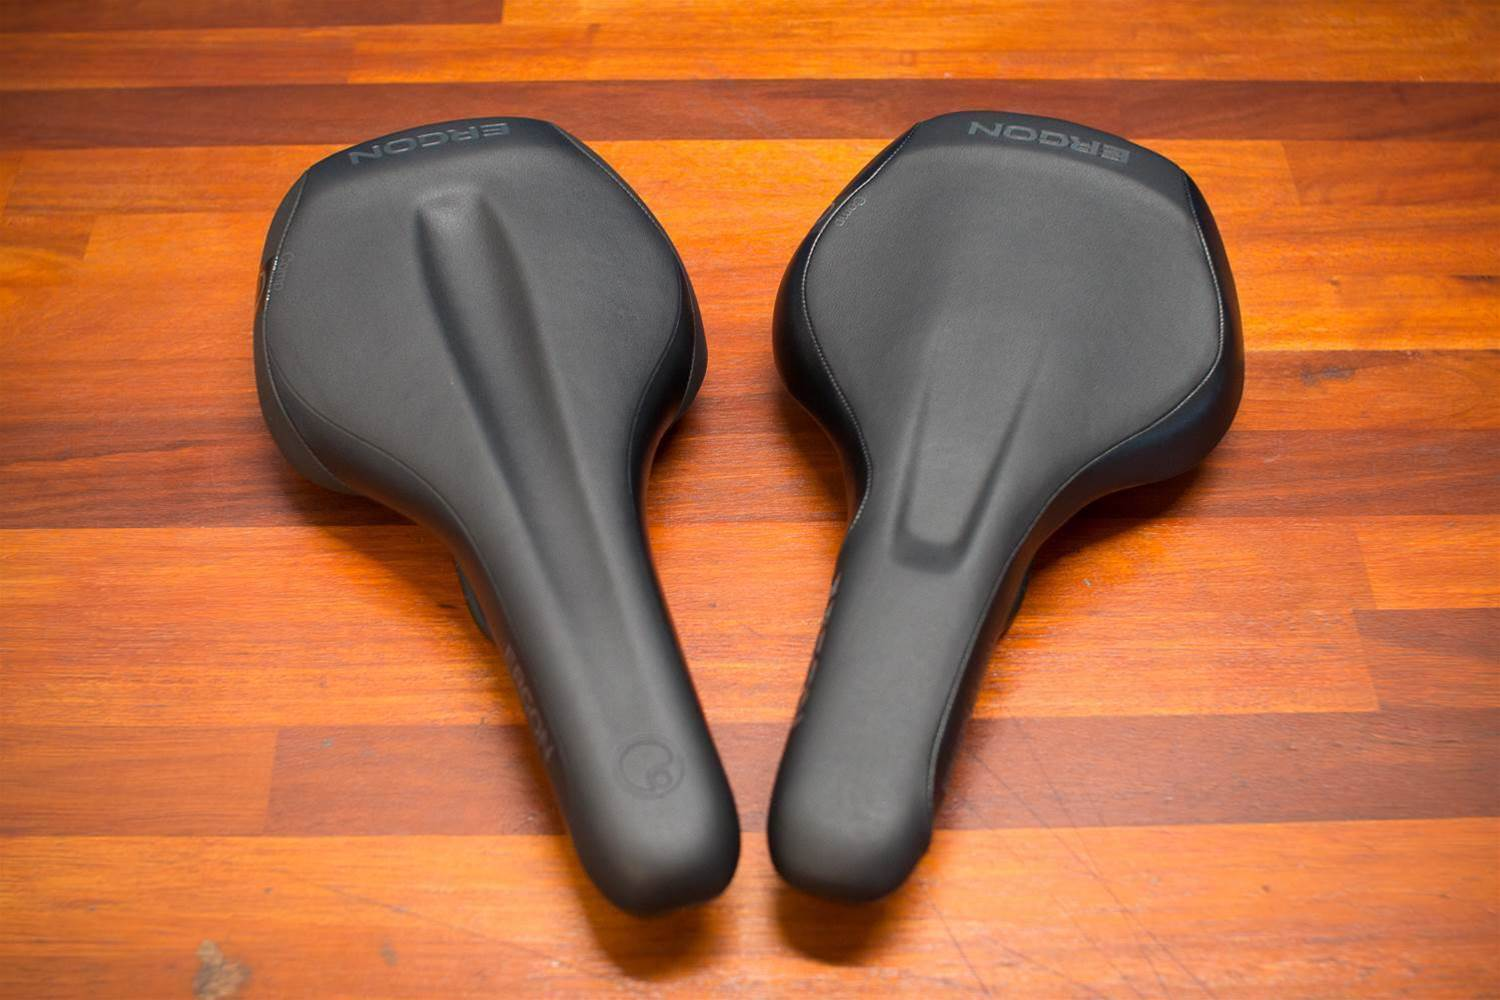 How to choose a mountain bike saddle